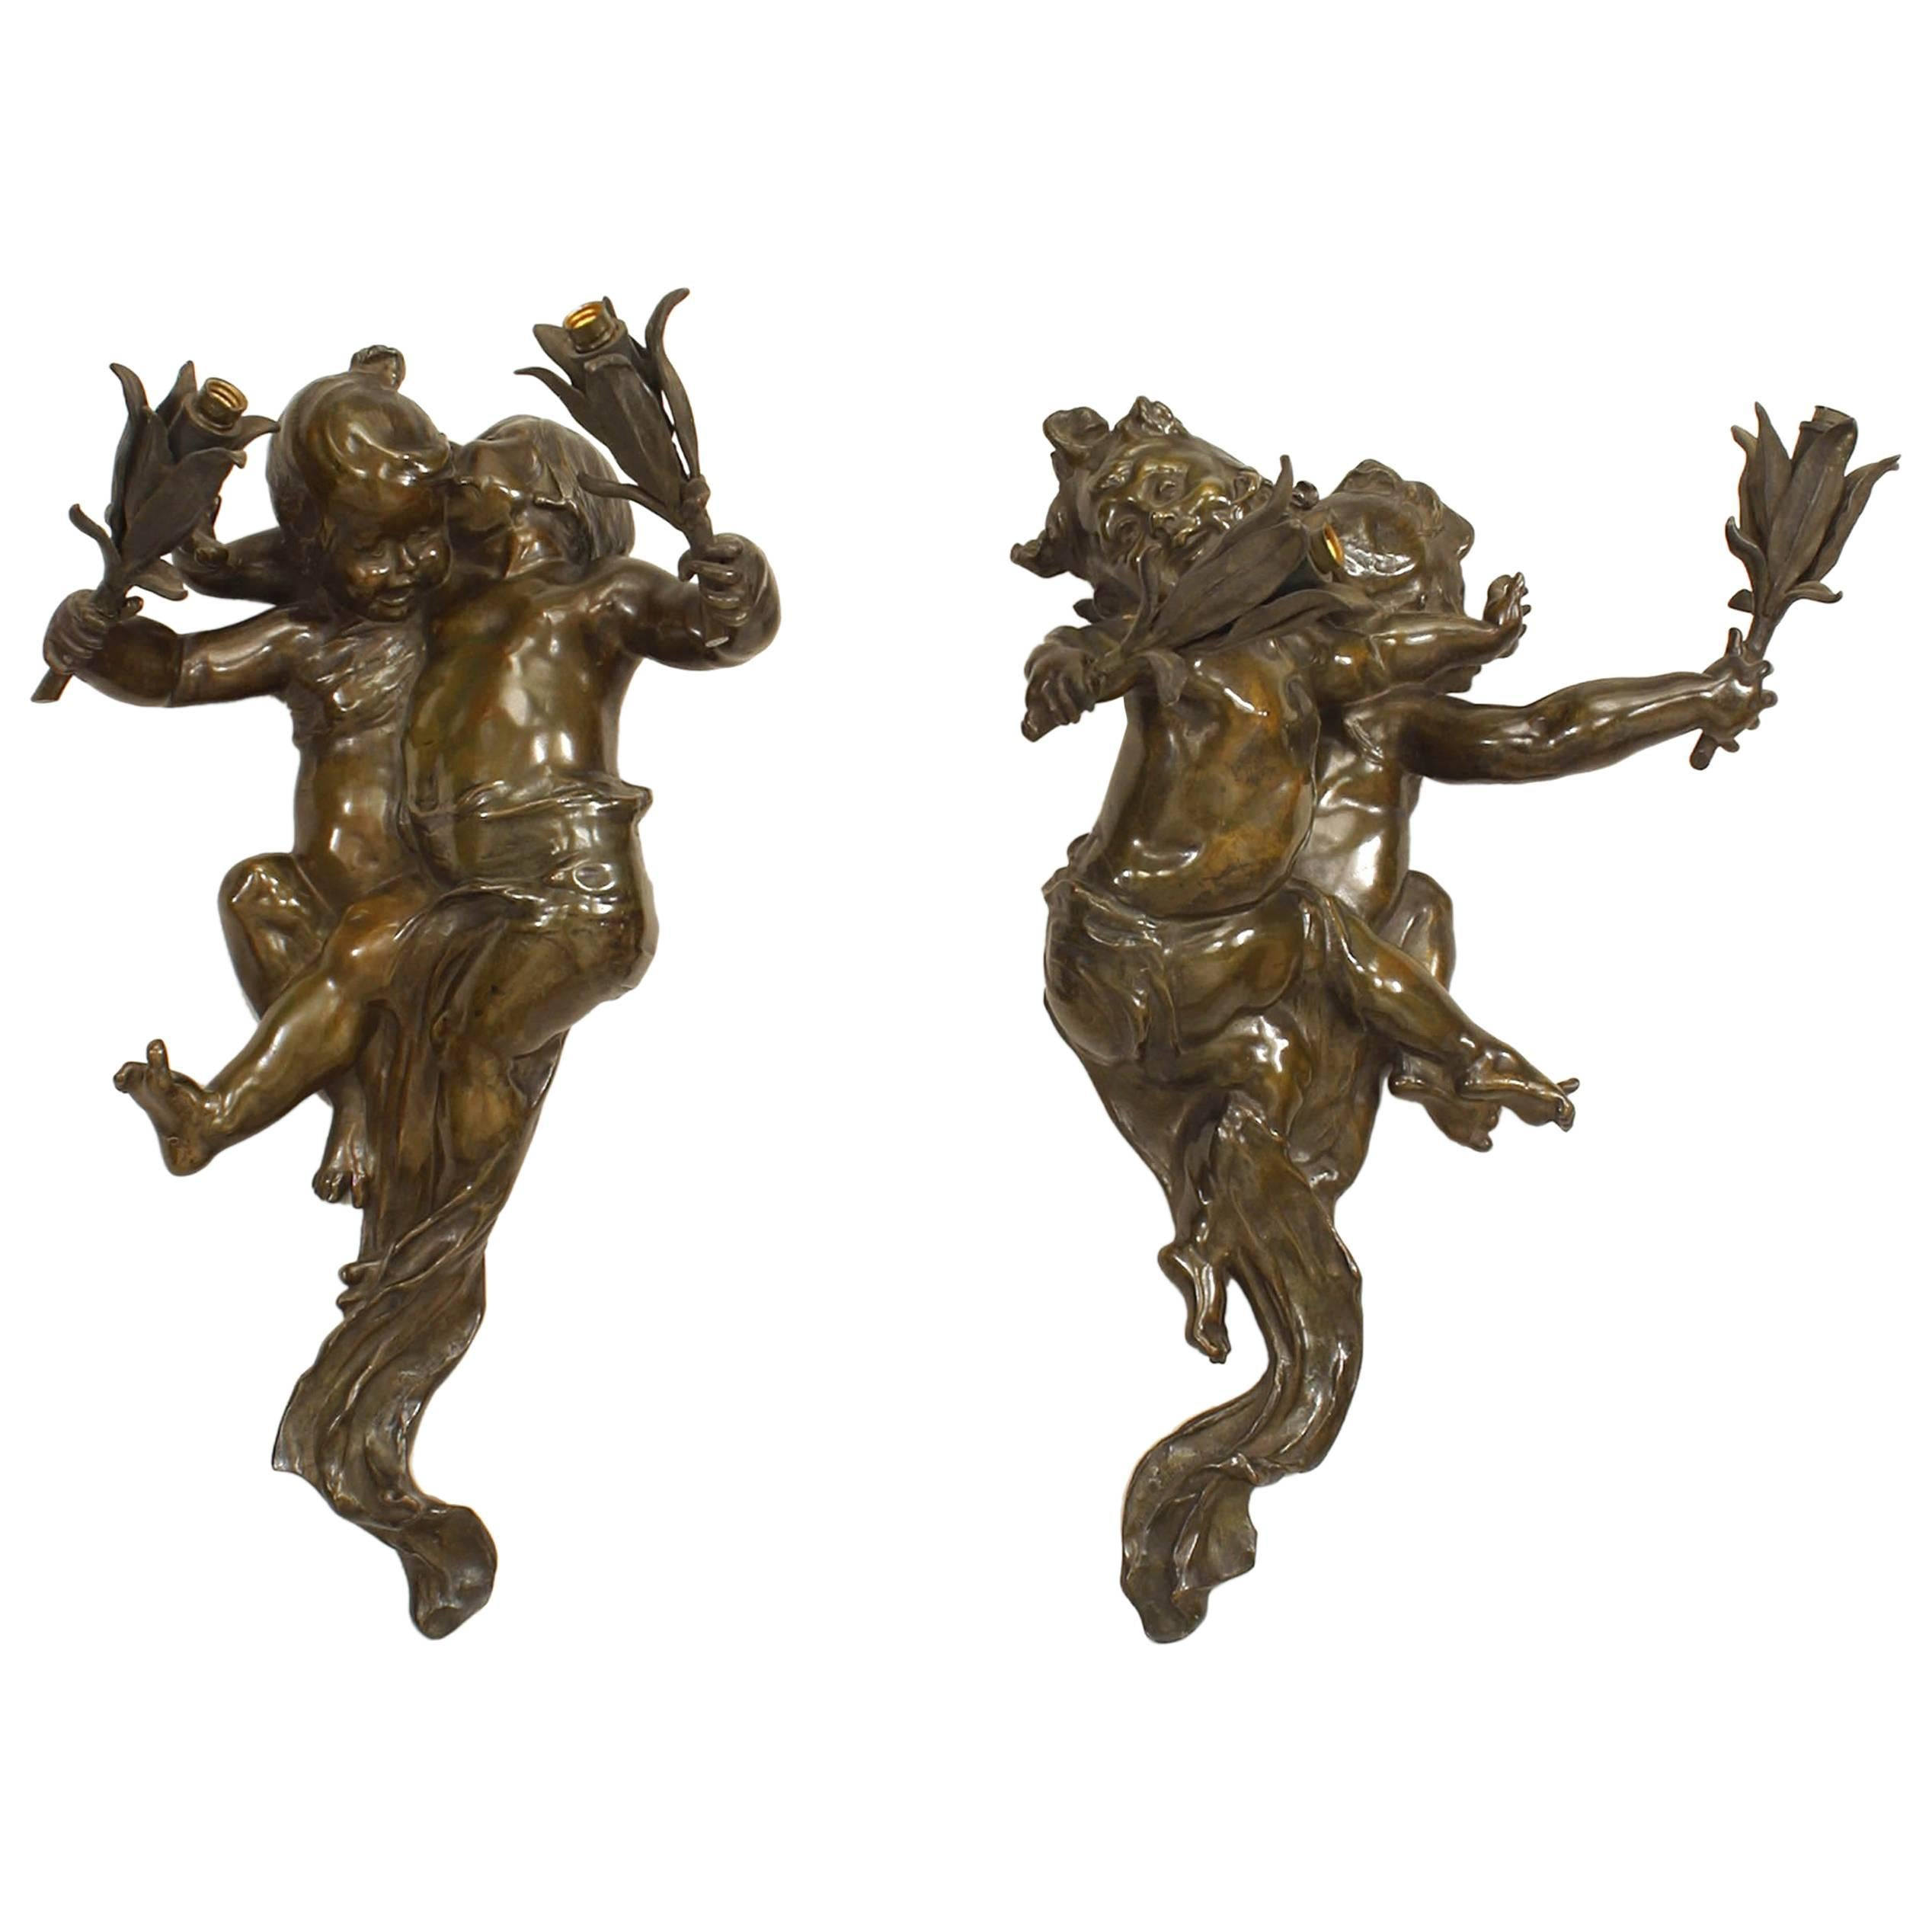 Pair of French Victorian Bronze Two-Arm Wall Sconces u0027Signed JOSEPH CHERETu0027  sc 1 st  1stDibs & Victorian Wall Lights and Sconces - 66 For Sale at 1stdibs